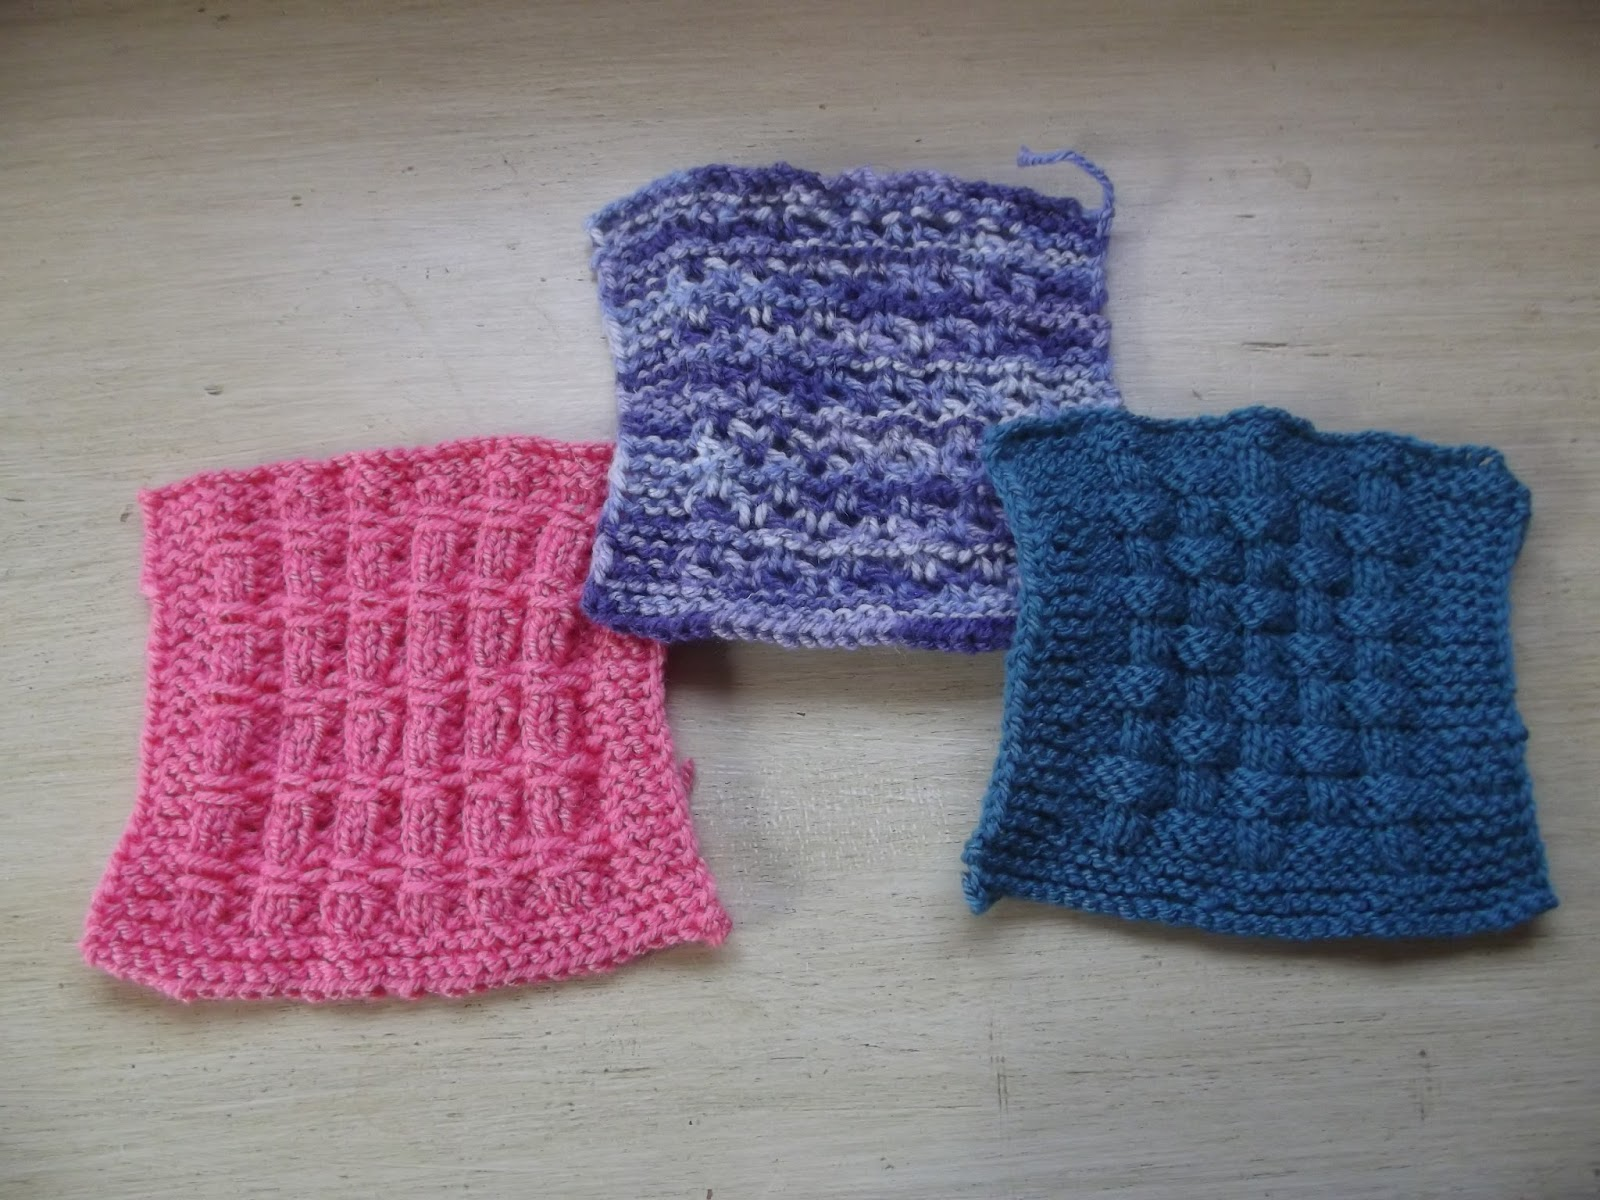 In The Garden: Afghan squares